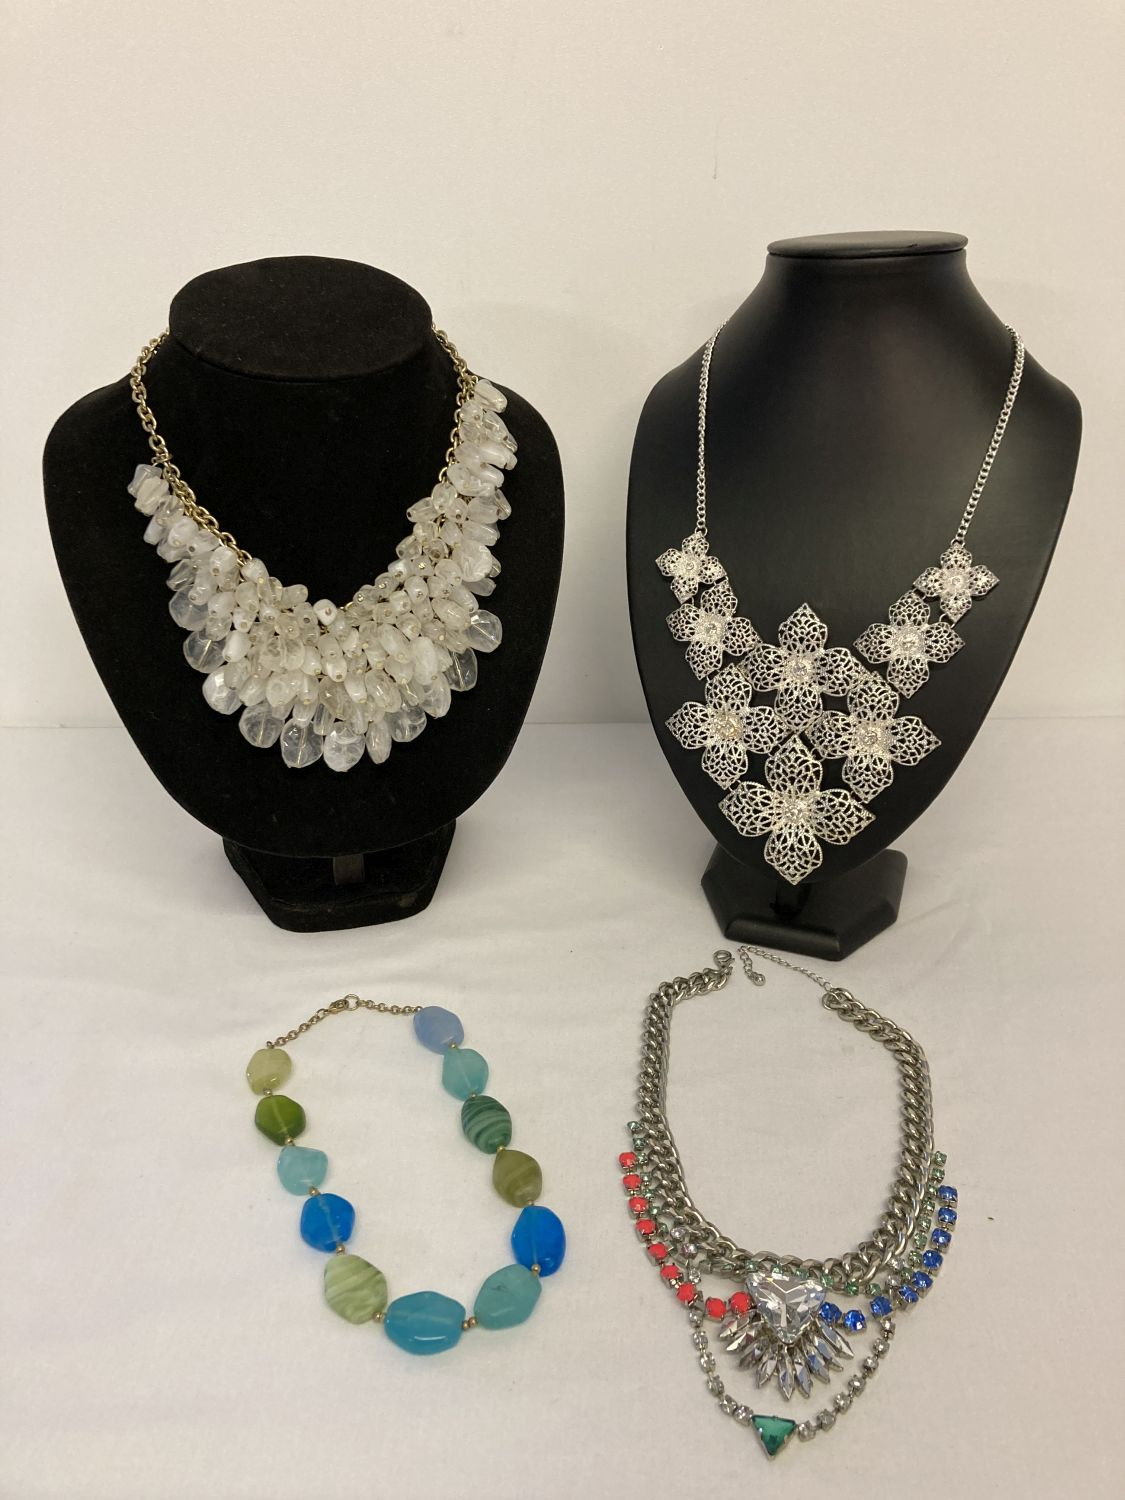 4 modern design costume jewellery statement necklaces in varying designs.